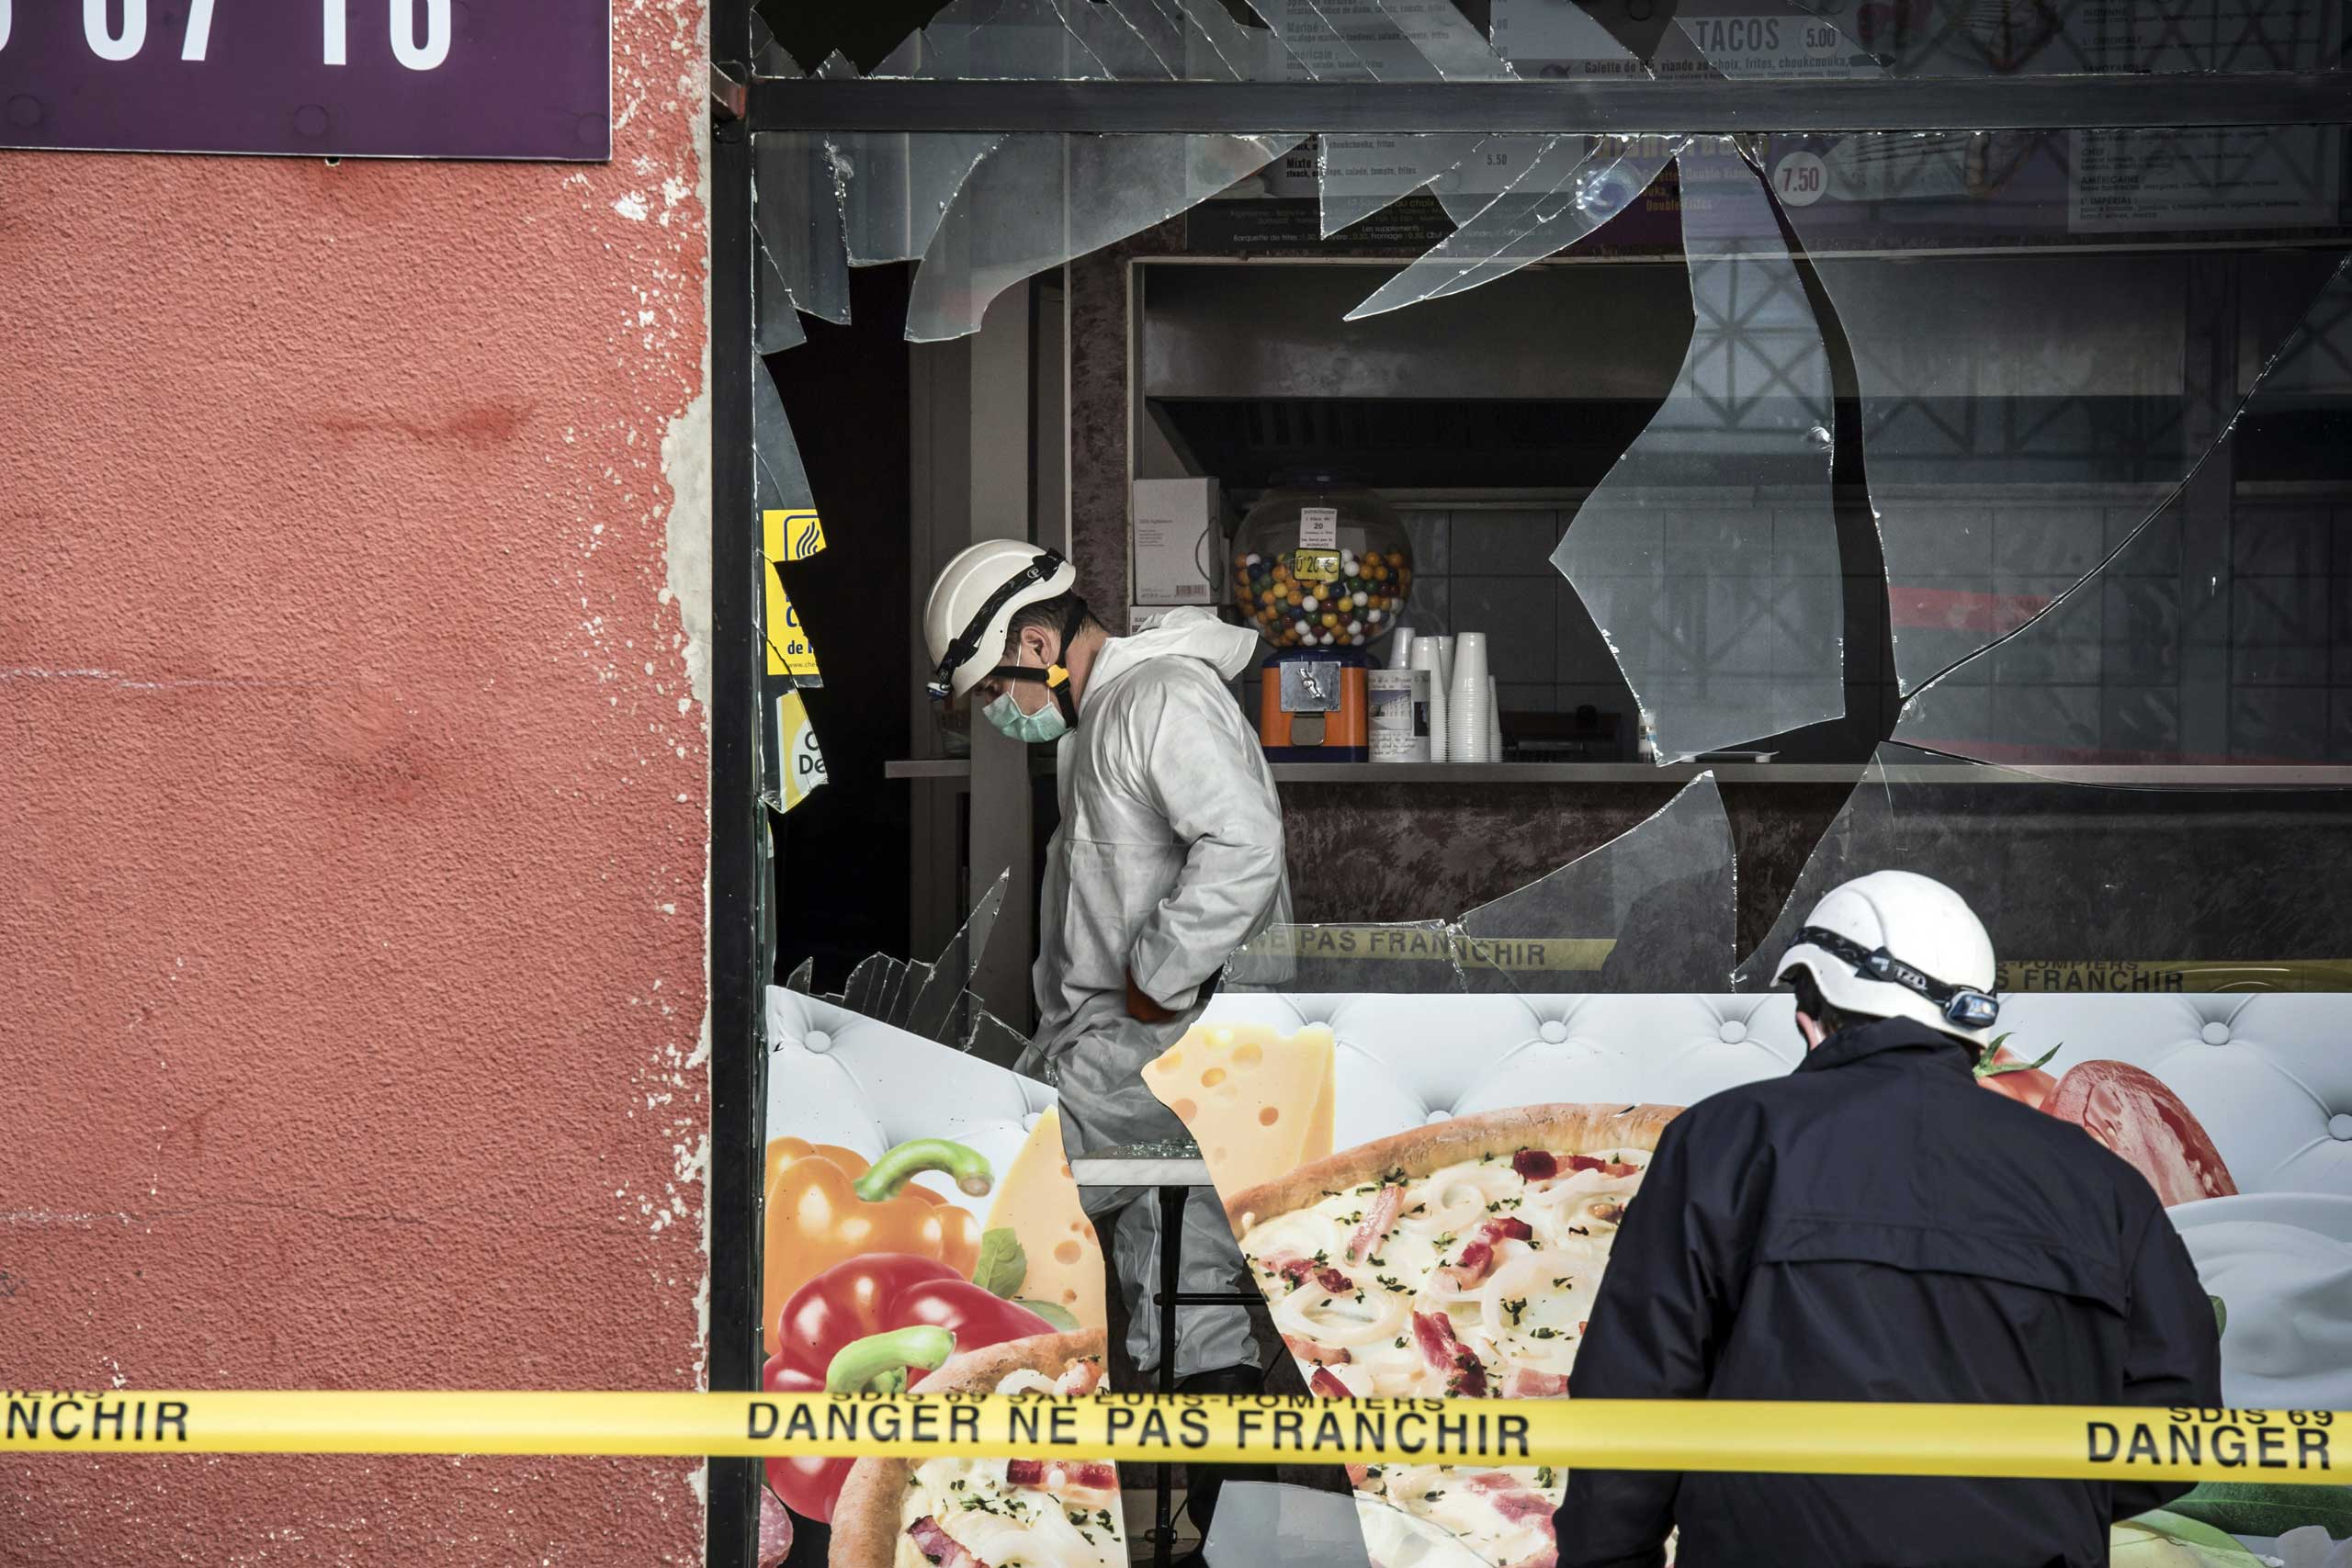 French police forensic scour the scene of an explosion at a kebab shop damaged following an explosion near a mosque, on Jan. 8, 2015, in Villefranche-sur-Saone, eastern France.